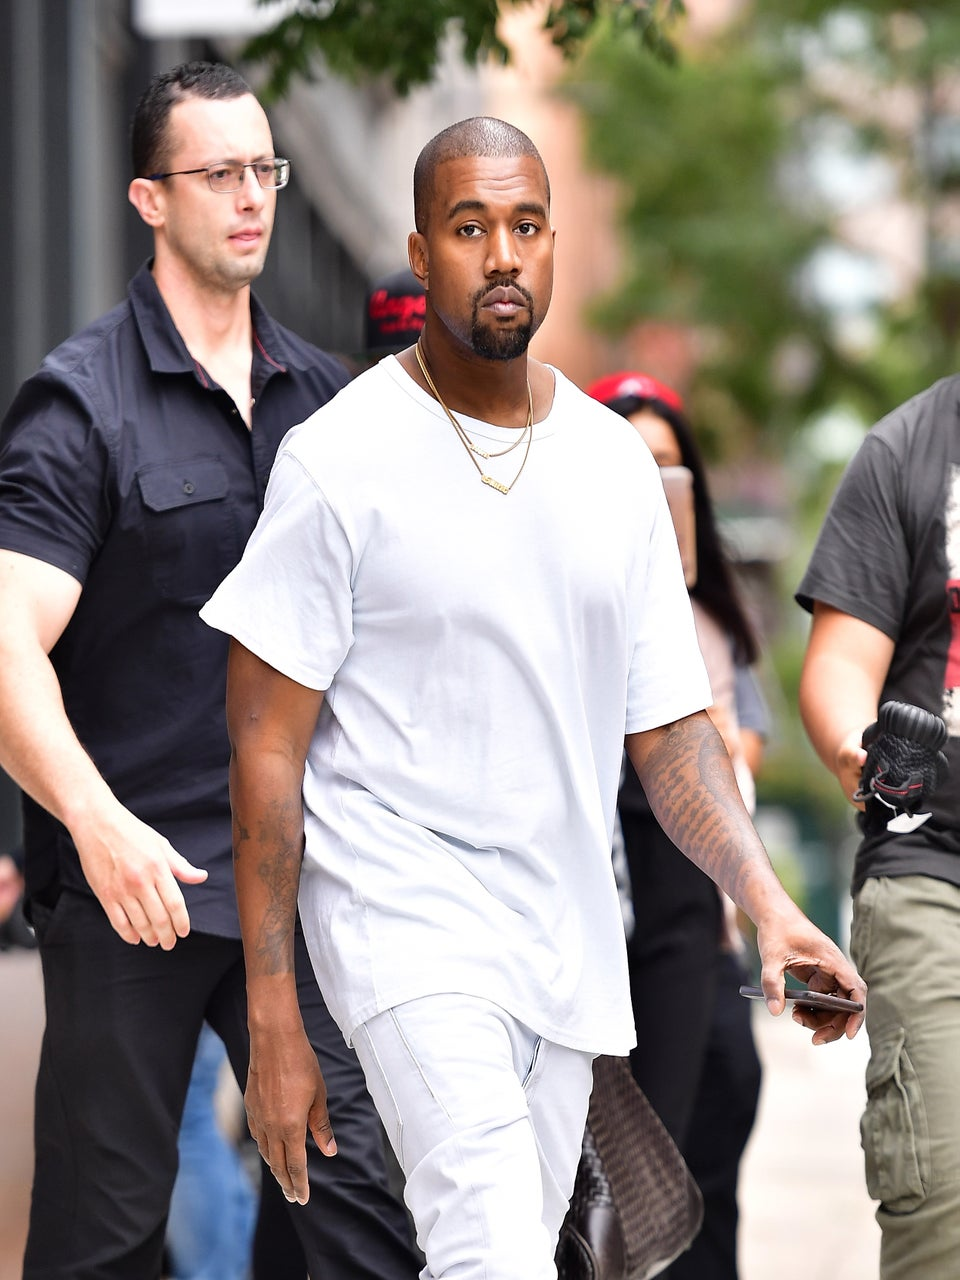 UCLA Medical Staff Reportedly In Hot Water After Trying to Access Kanye West's Records